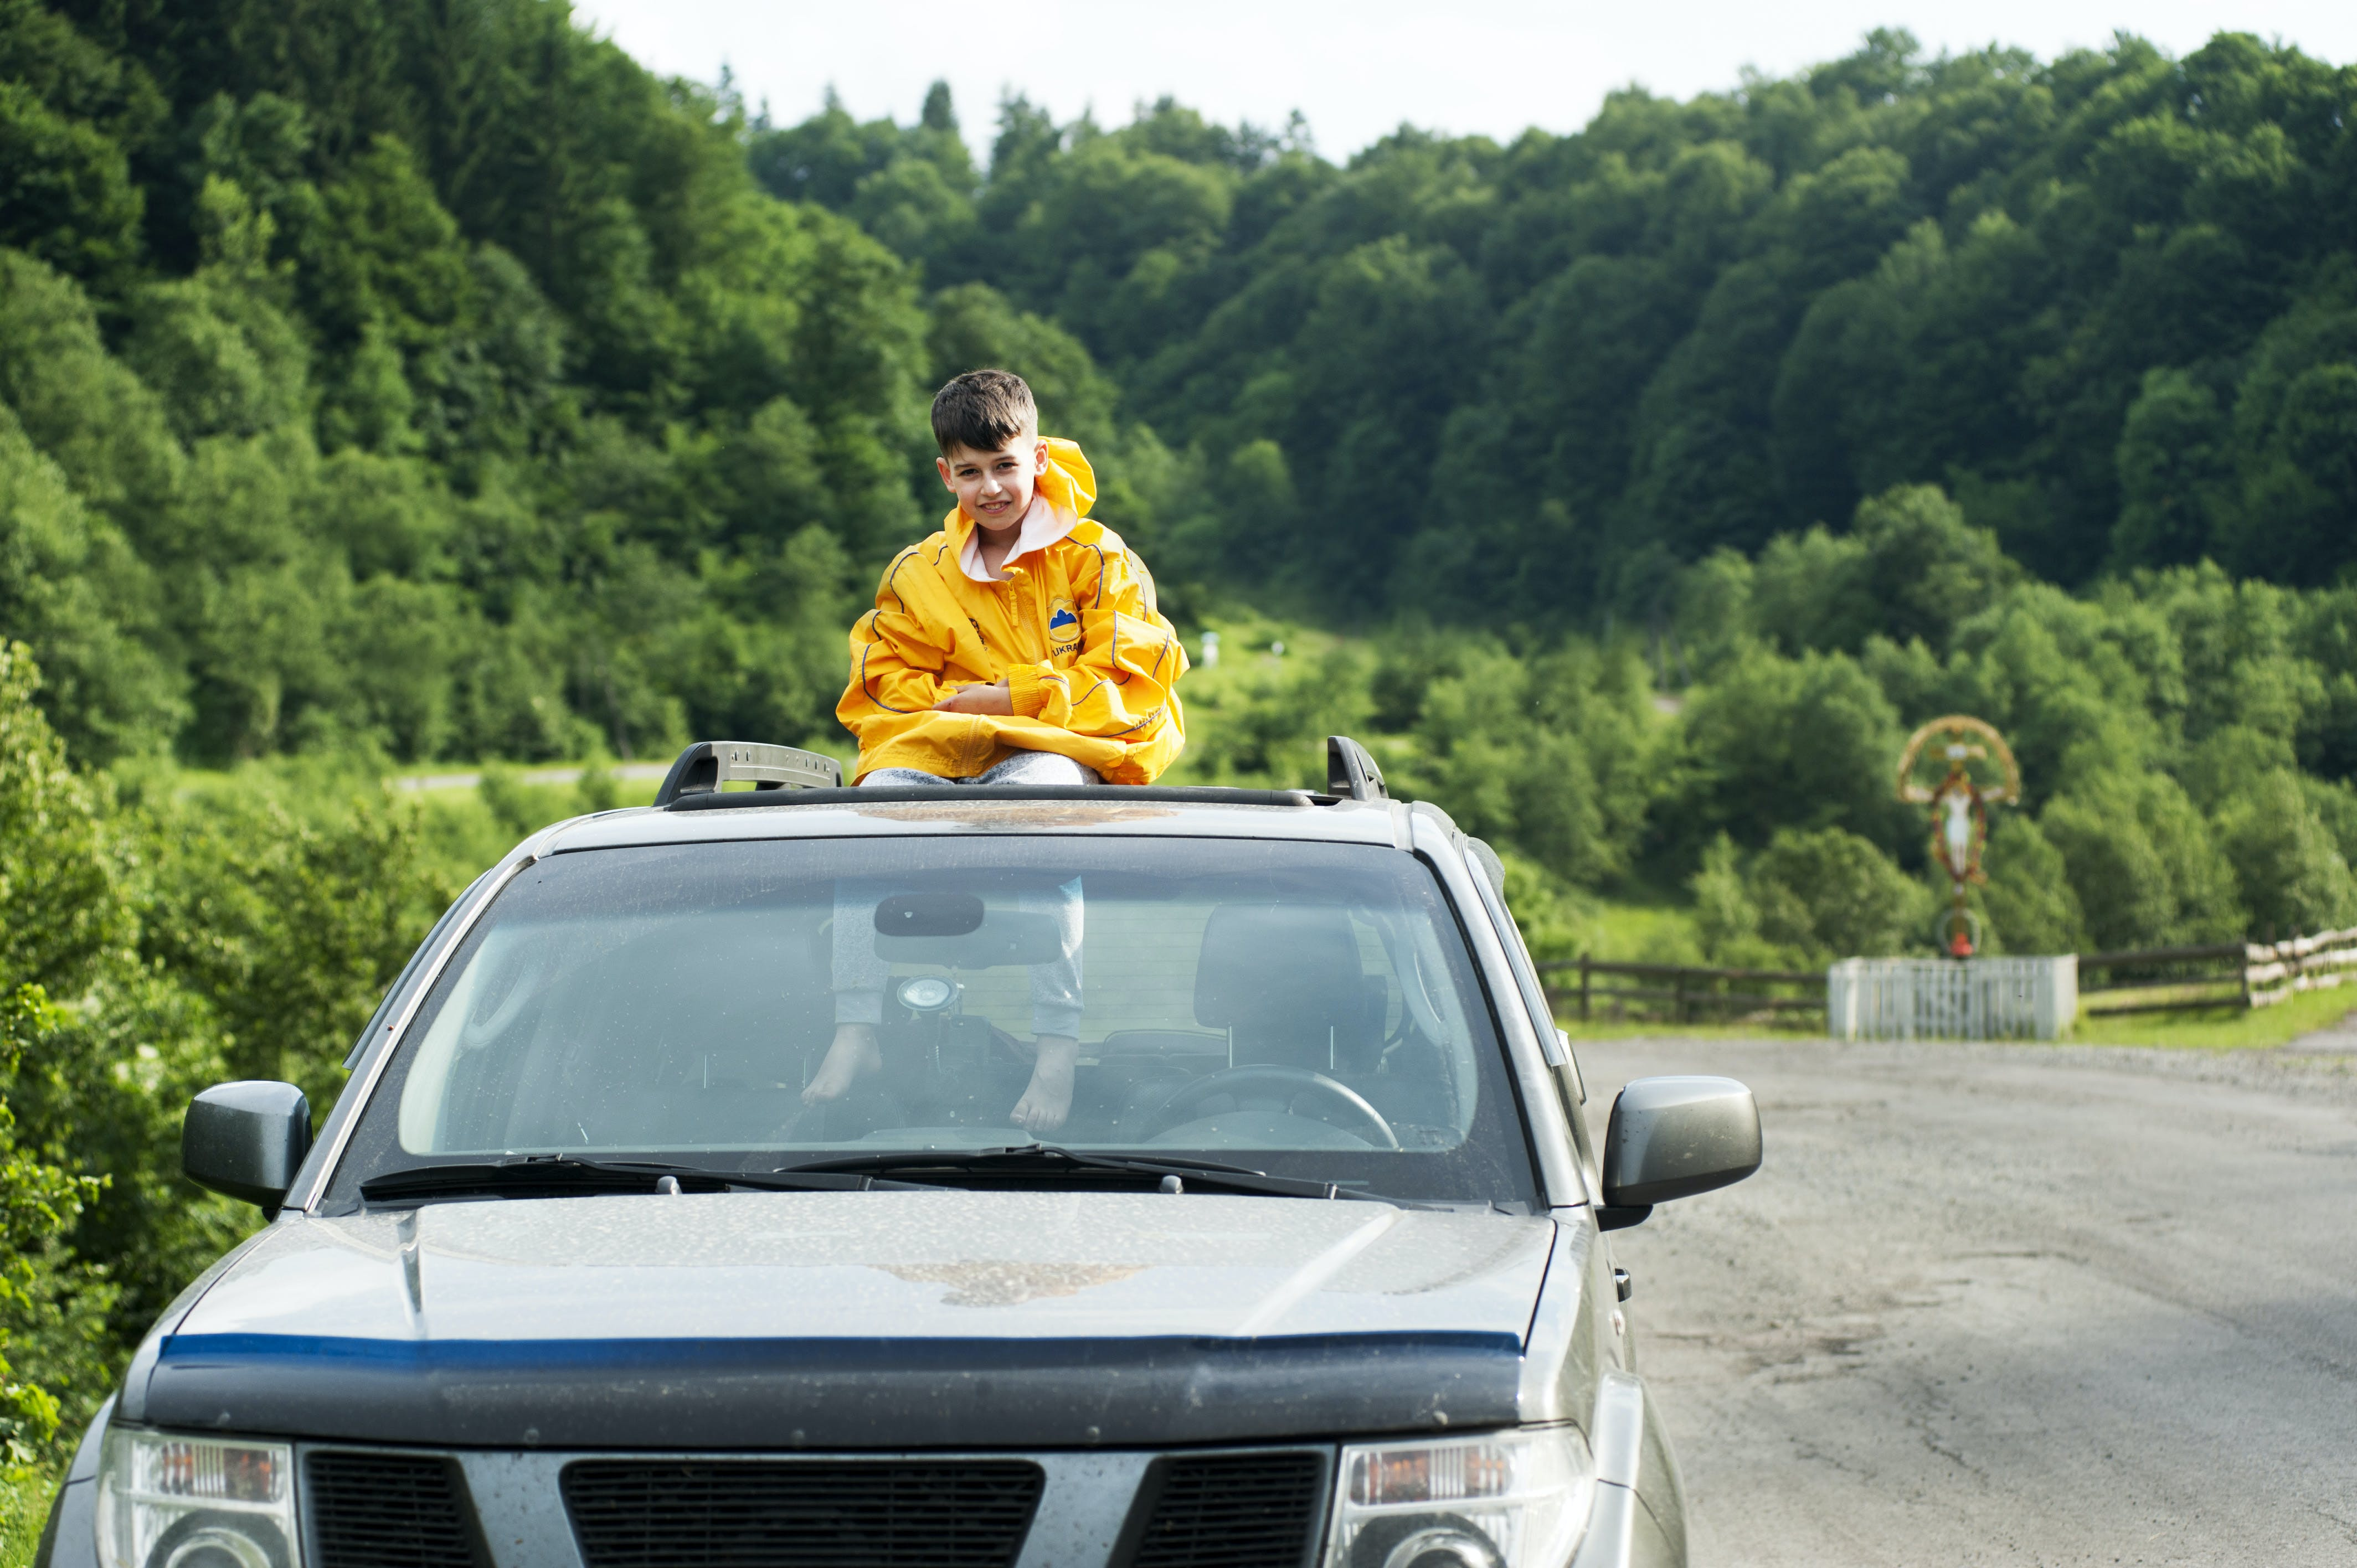 Child in Yellow Jacket Sitting on Roof of Nissan Frontier Through the Sunroof